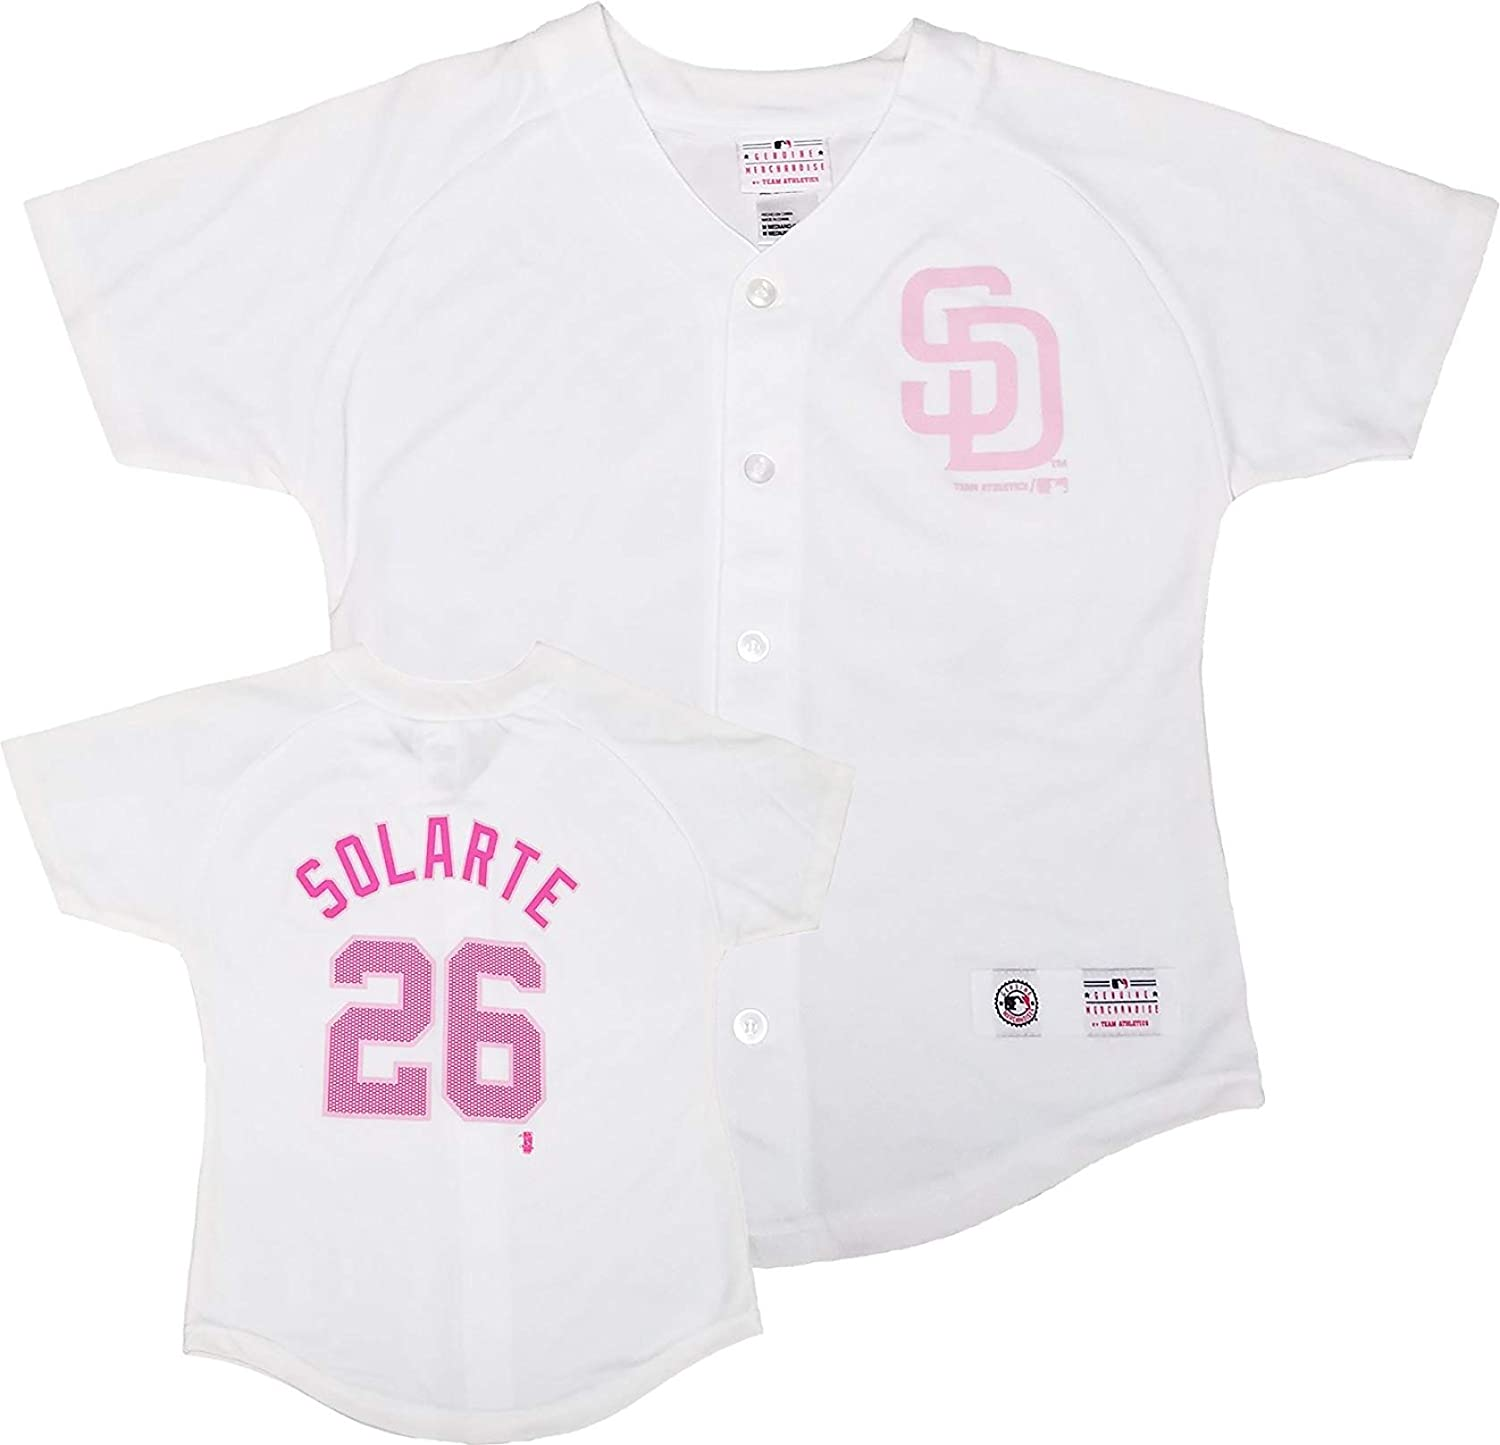 Yangervis Solarte San Diego Padres White Pink Girls Youth Player Fashion Jersey 61yH9ioG5yL